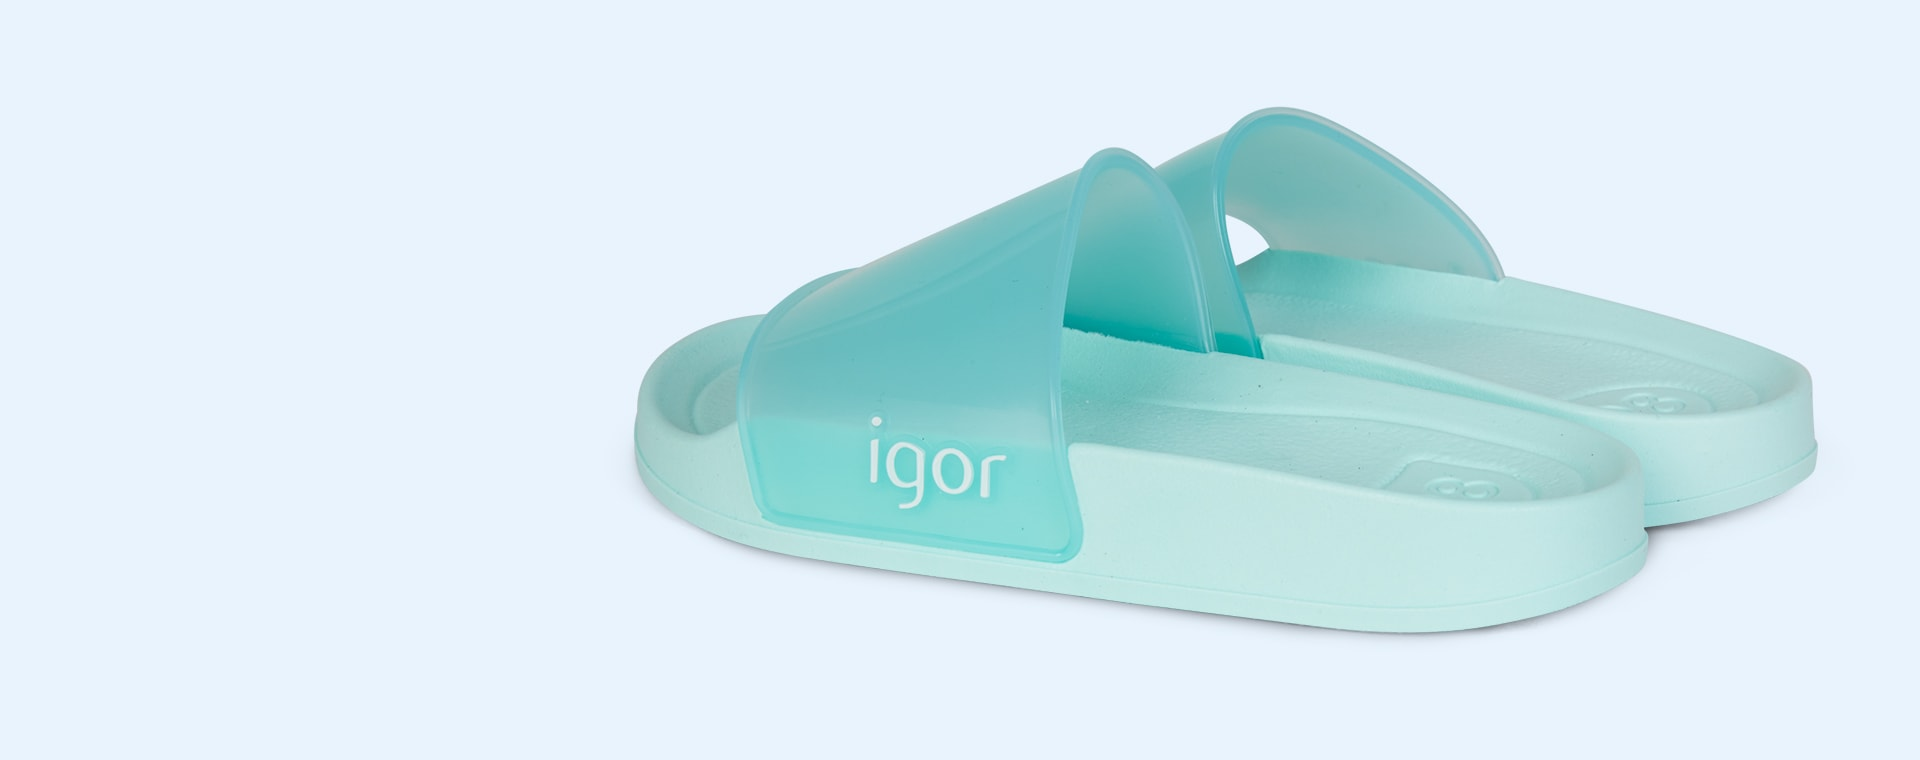 Aquamarina igor Beach Cristal Sliders